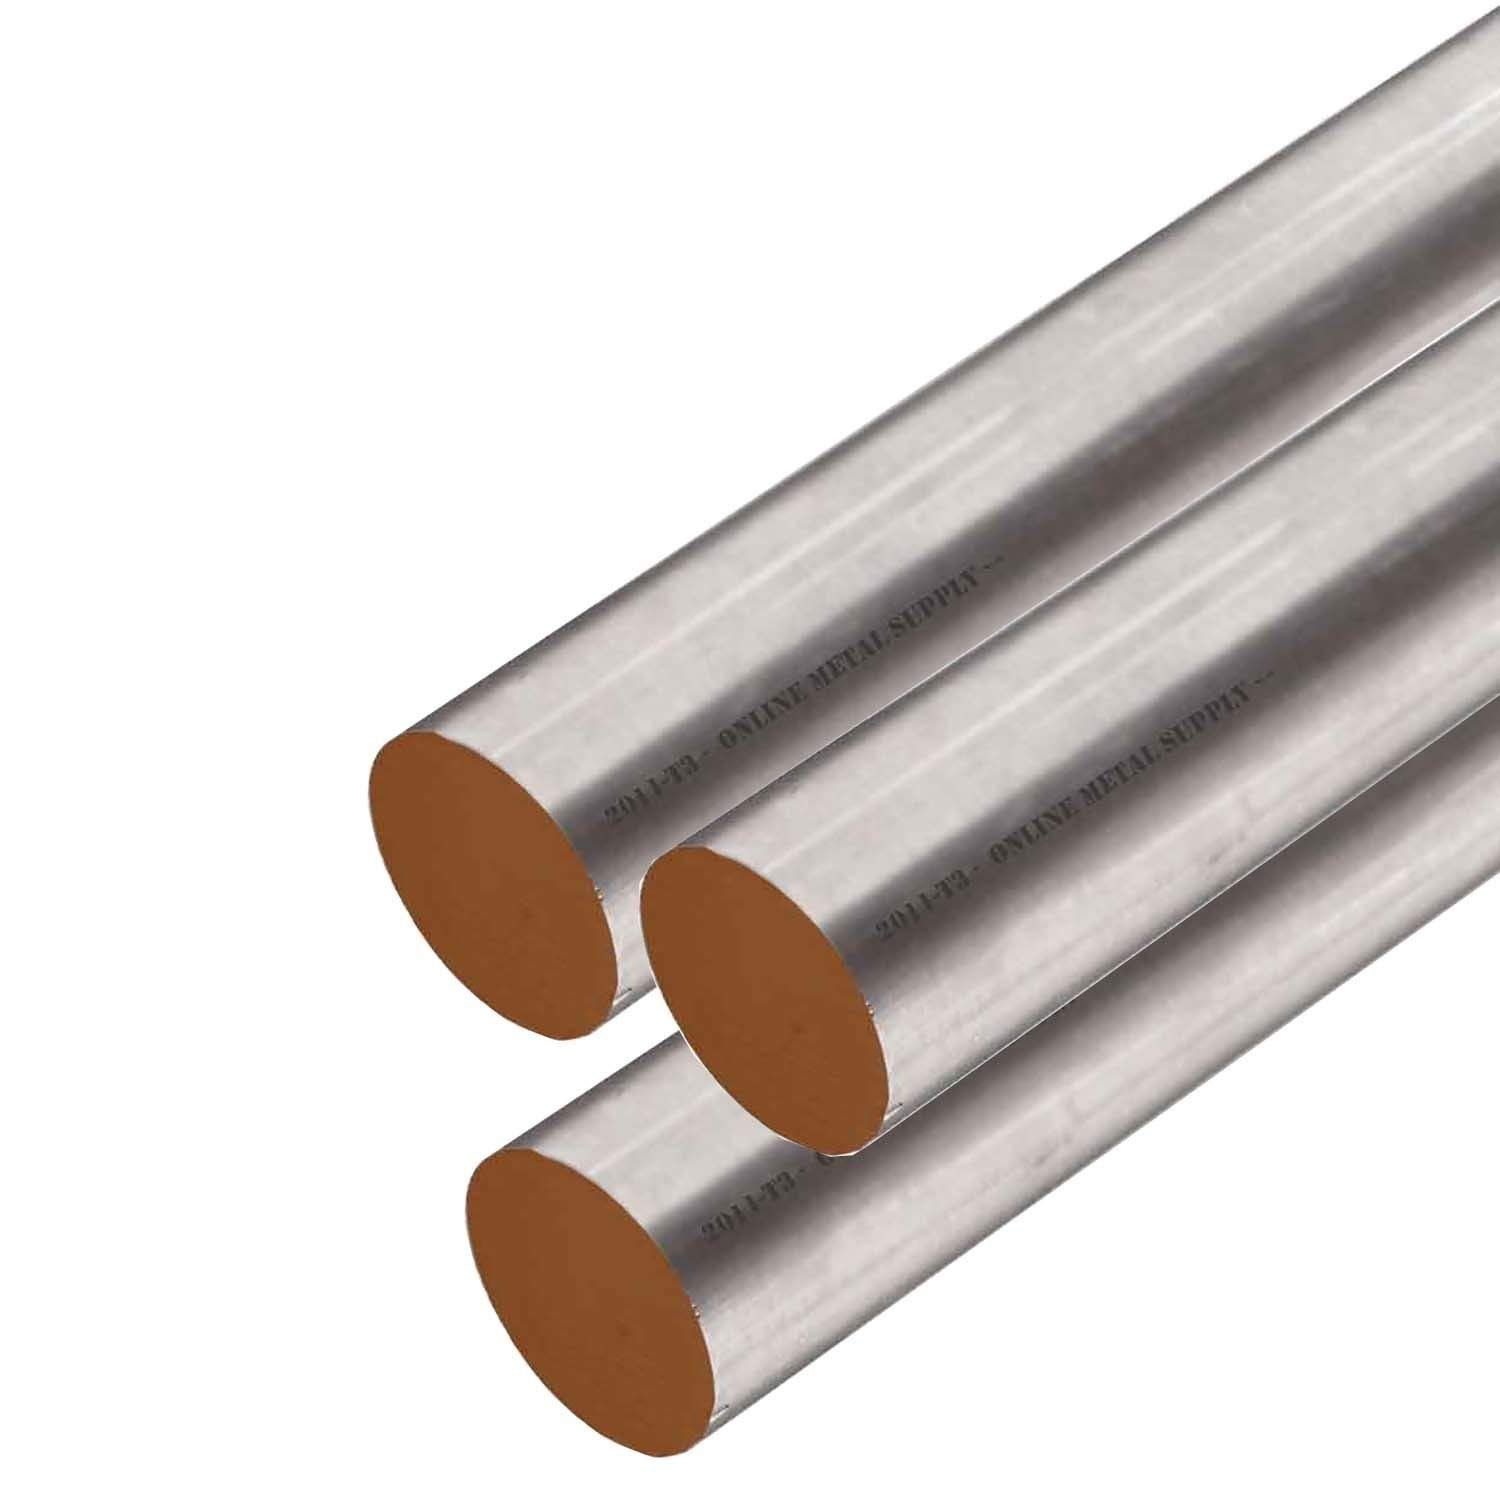 Online Metal Supply 2011-T3 Aluminum Round Rod, 0.437 (7/16 inch) x 12 Feet (3 Pieces, 48'' Long) by Online Metal Supply